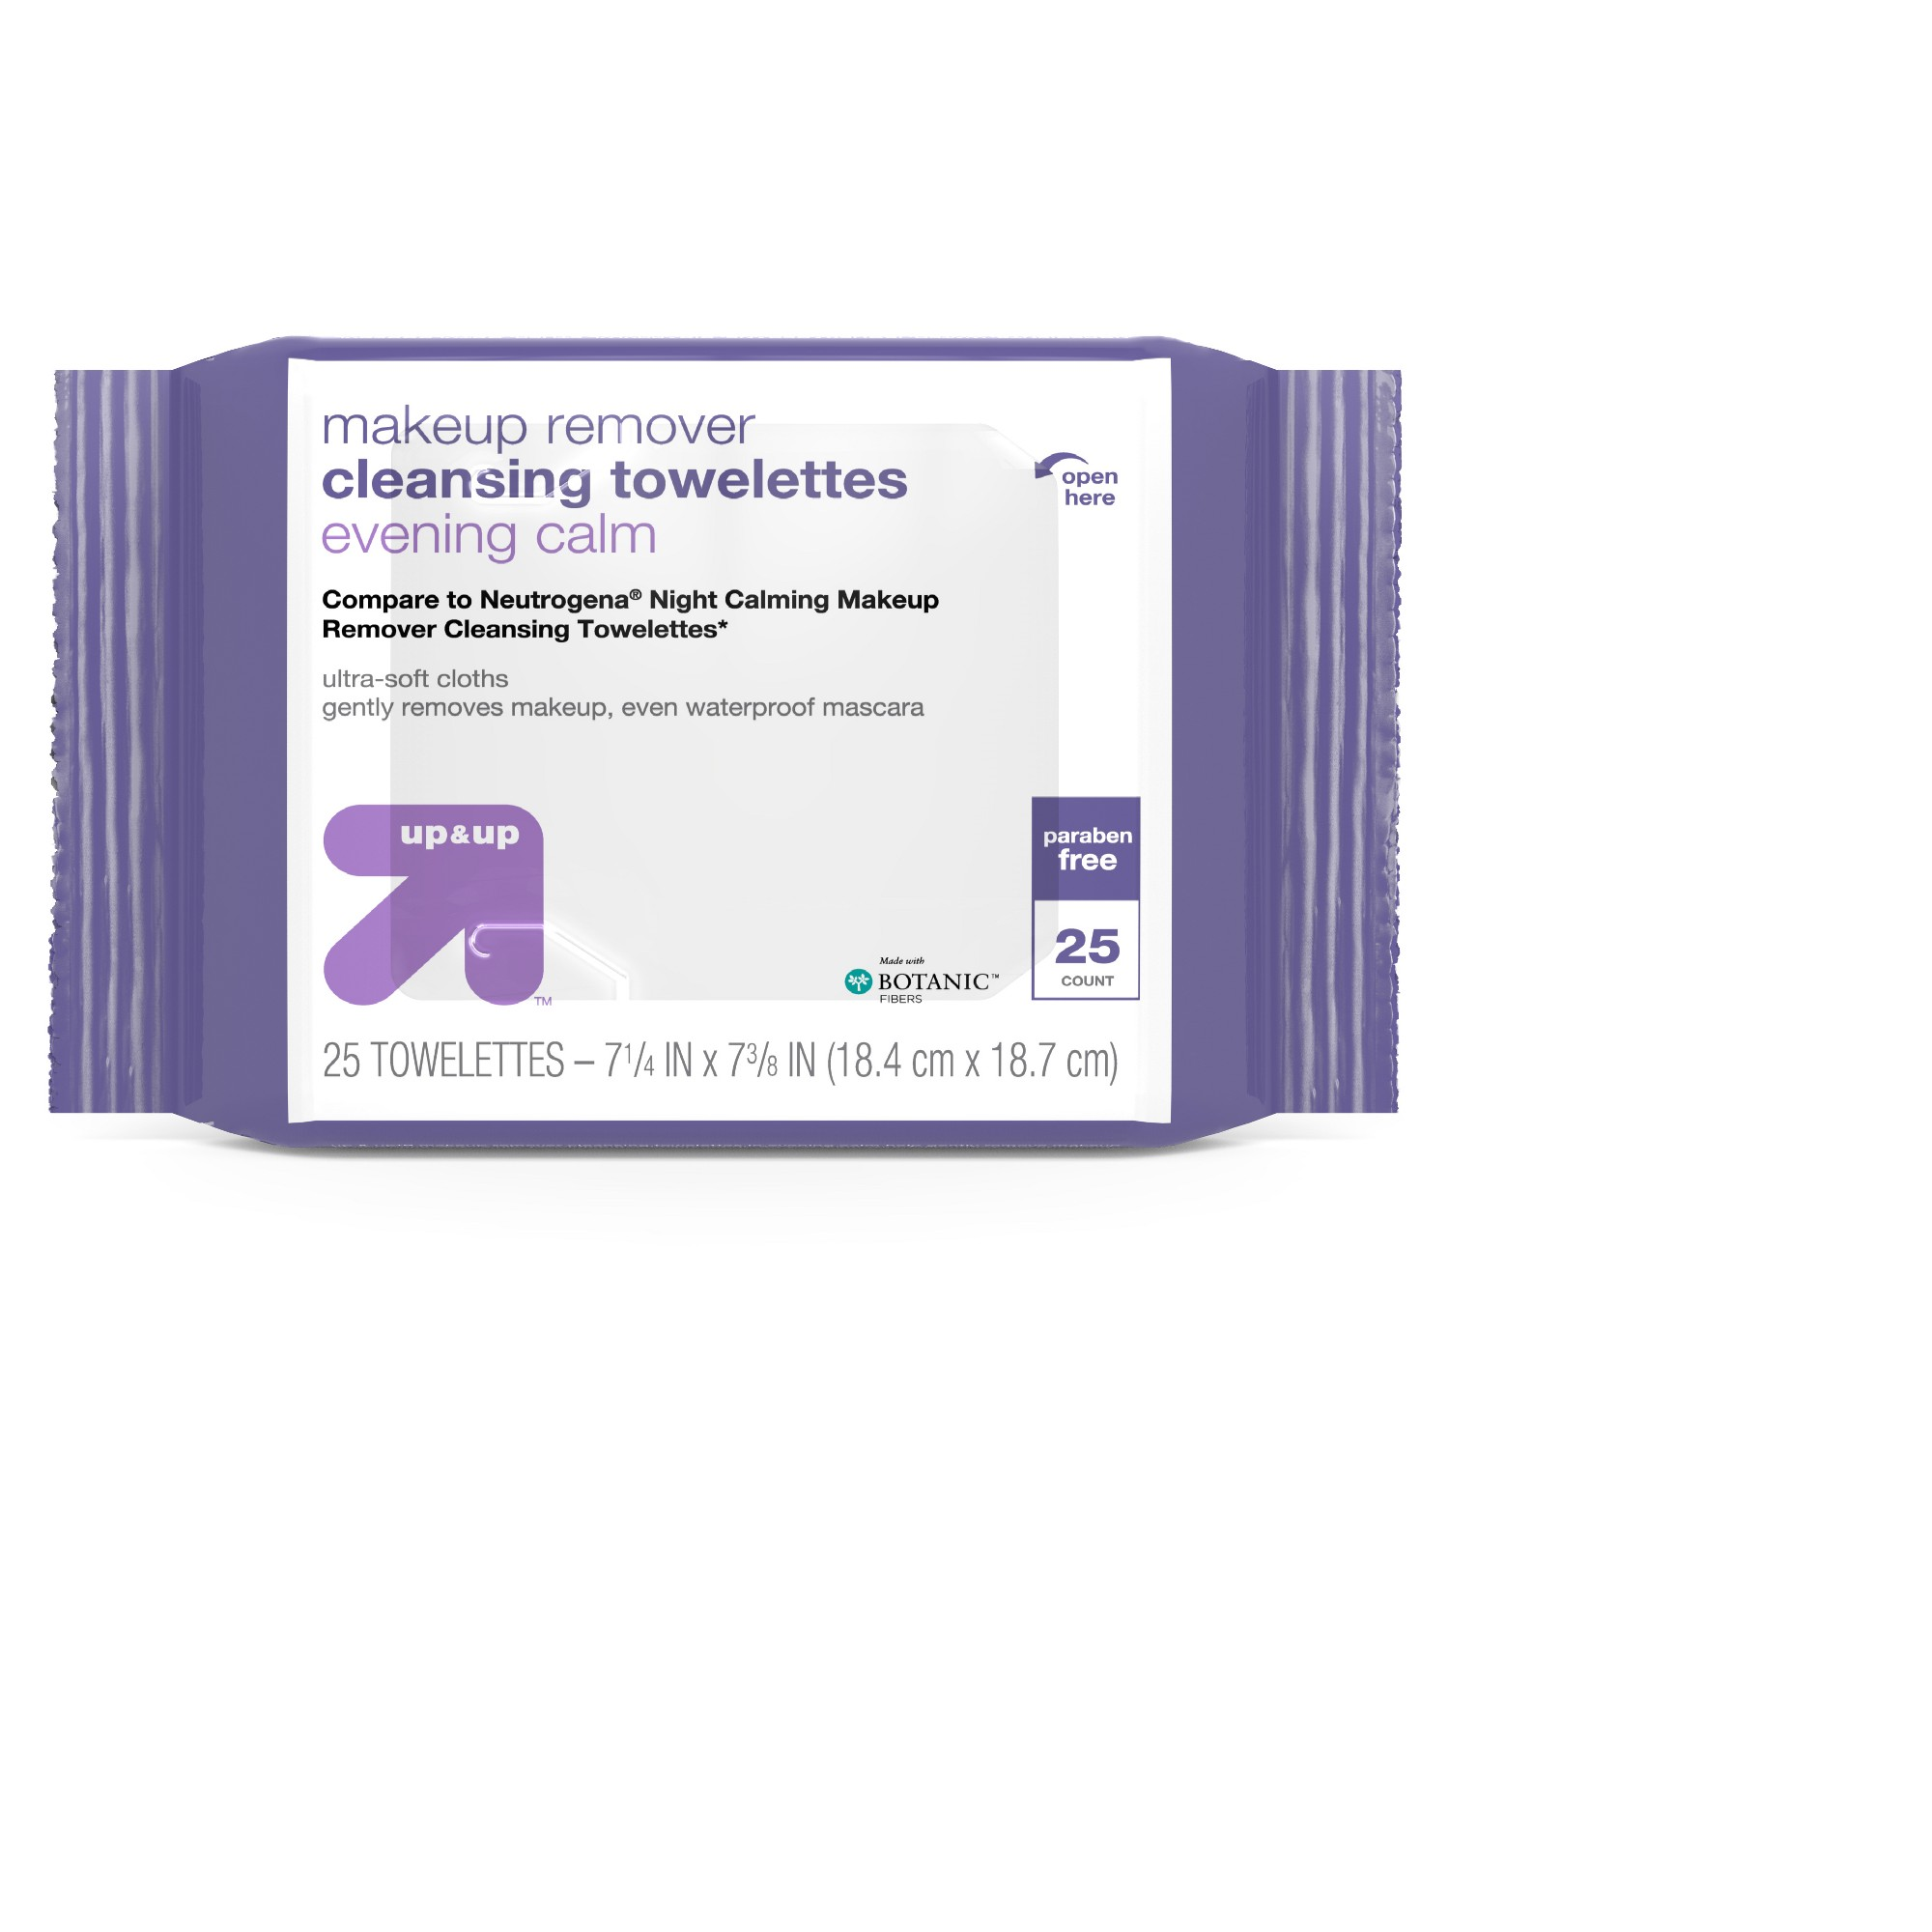 Makeup Remover Cleansing Towelettes 25ct Up&Up